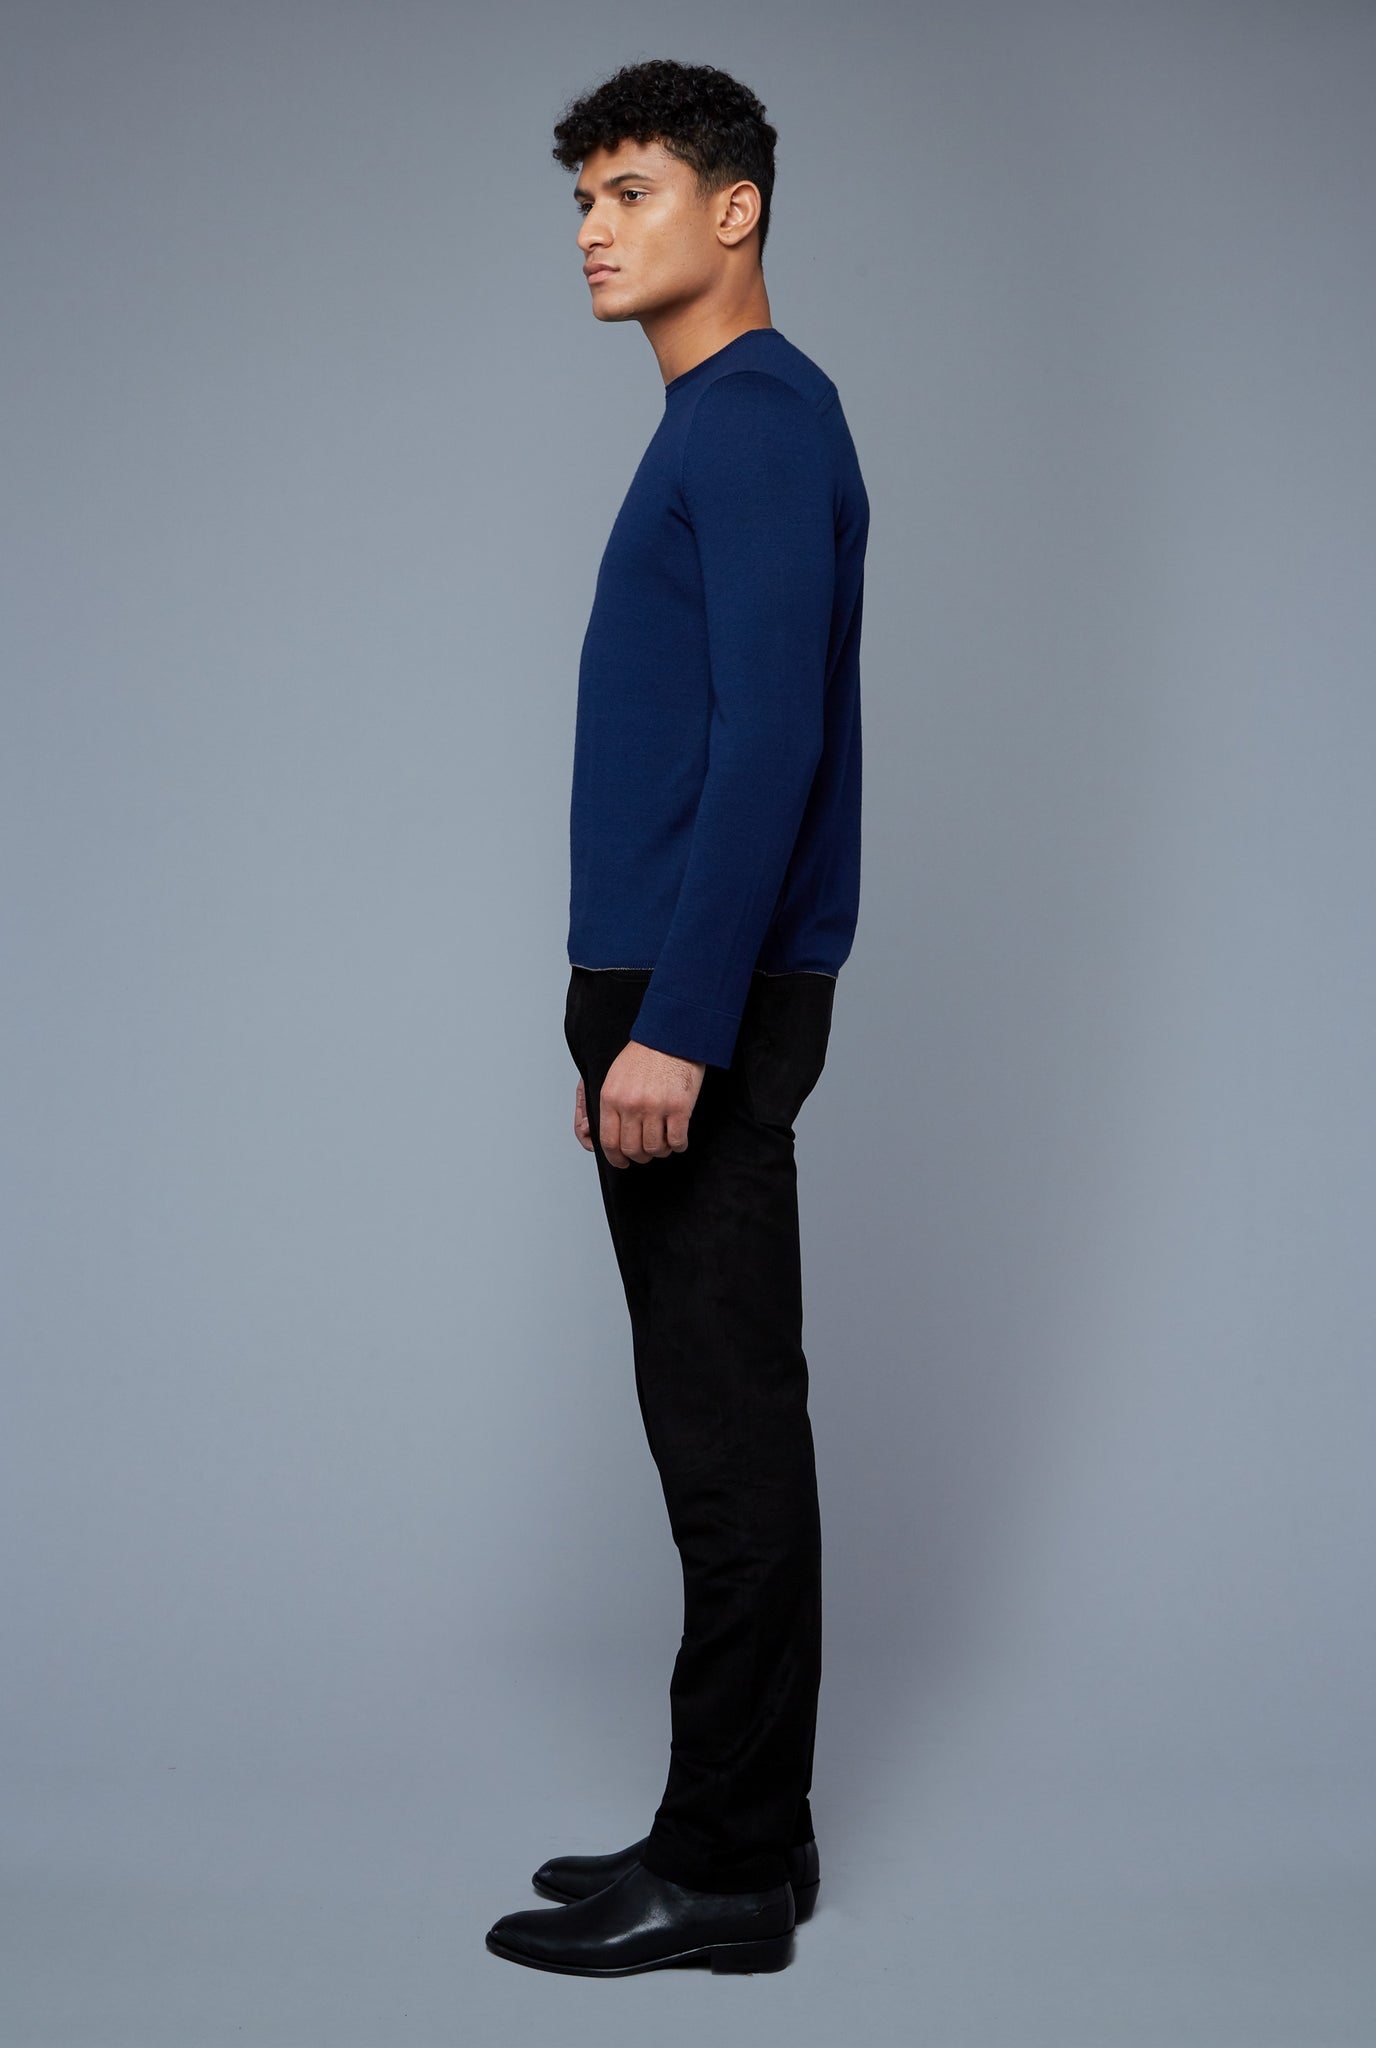 Side View: Model Tre Boutilier wearing Long Sleeve Sweater Tee